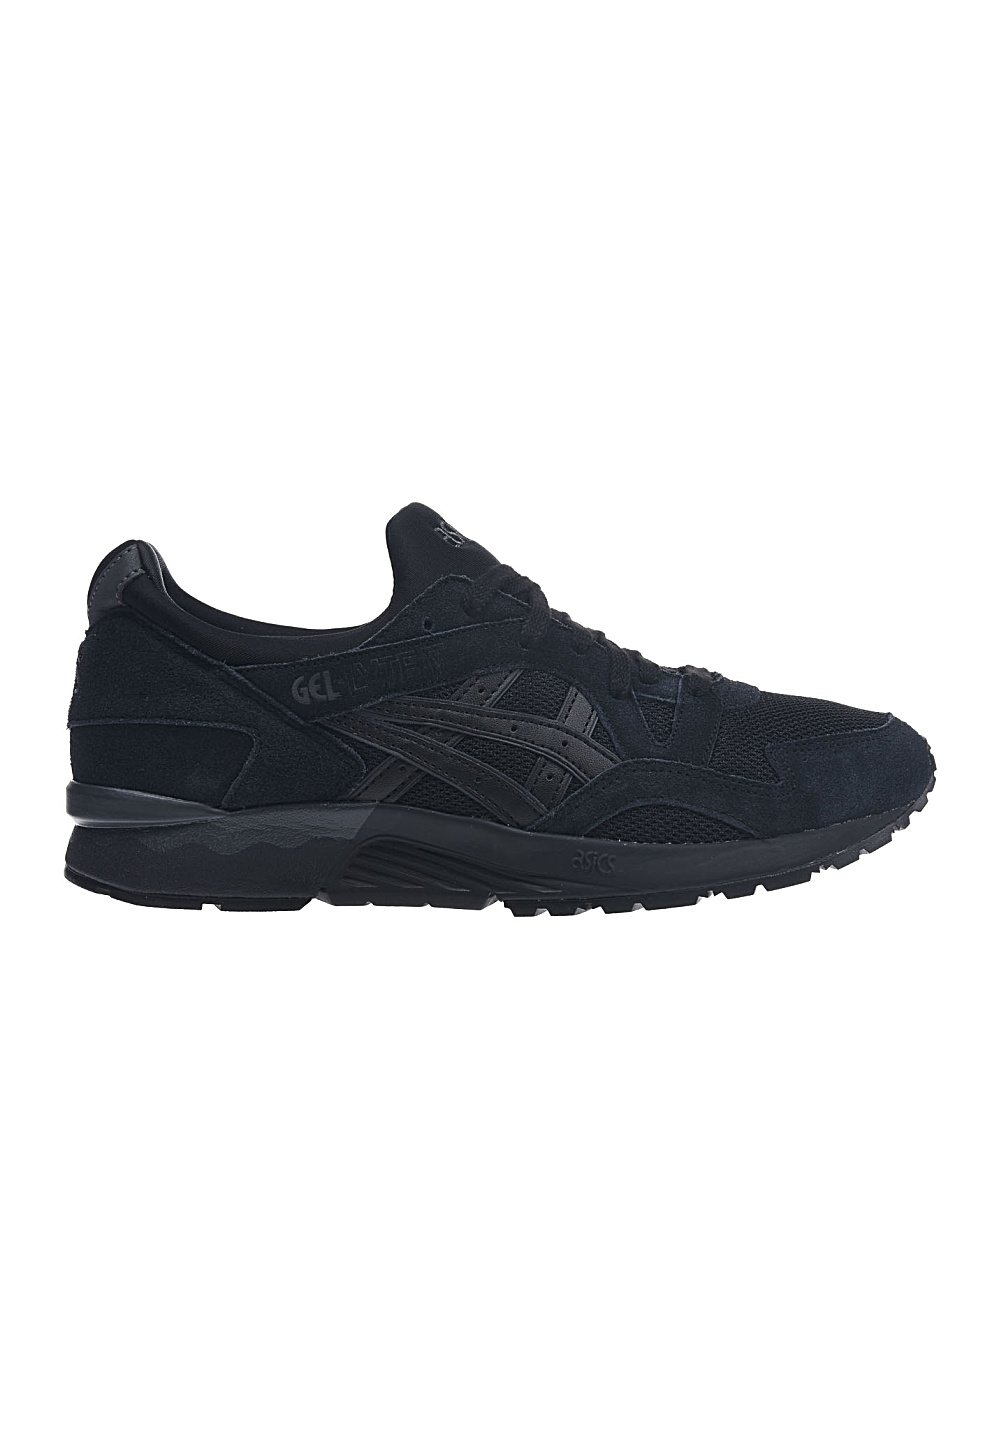 Asics Gel-Lyte V - Zapatillas de Running Unisex Adulto 36 EU|Multicolor